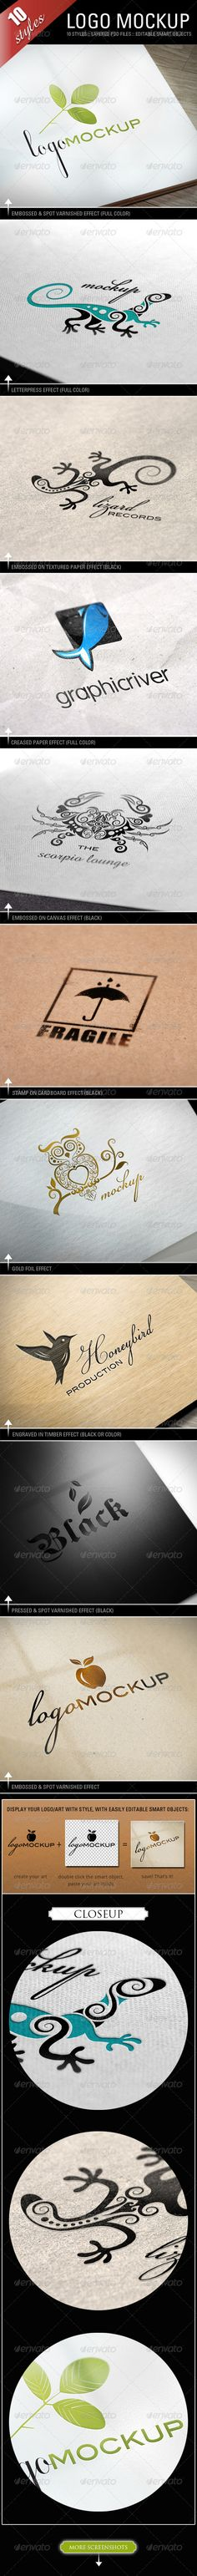 Logo Mockups - 10 Styles Graphic River